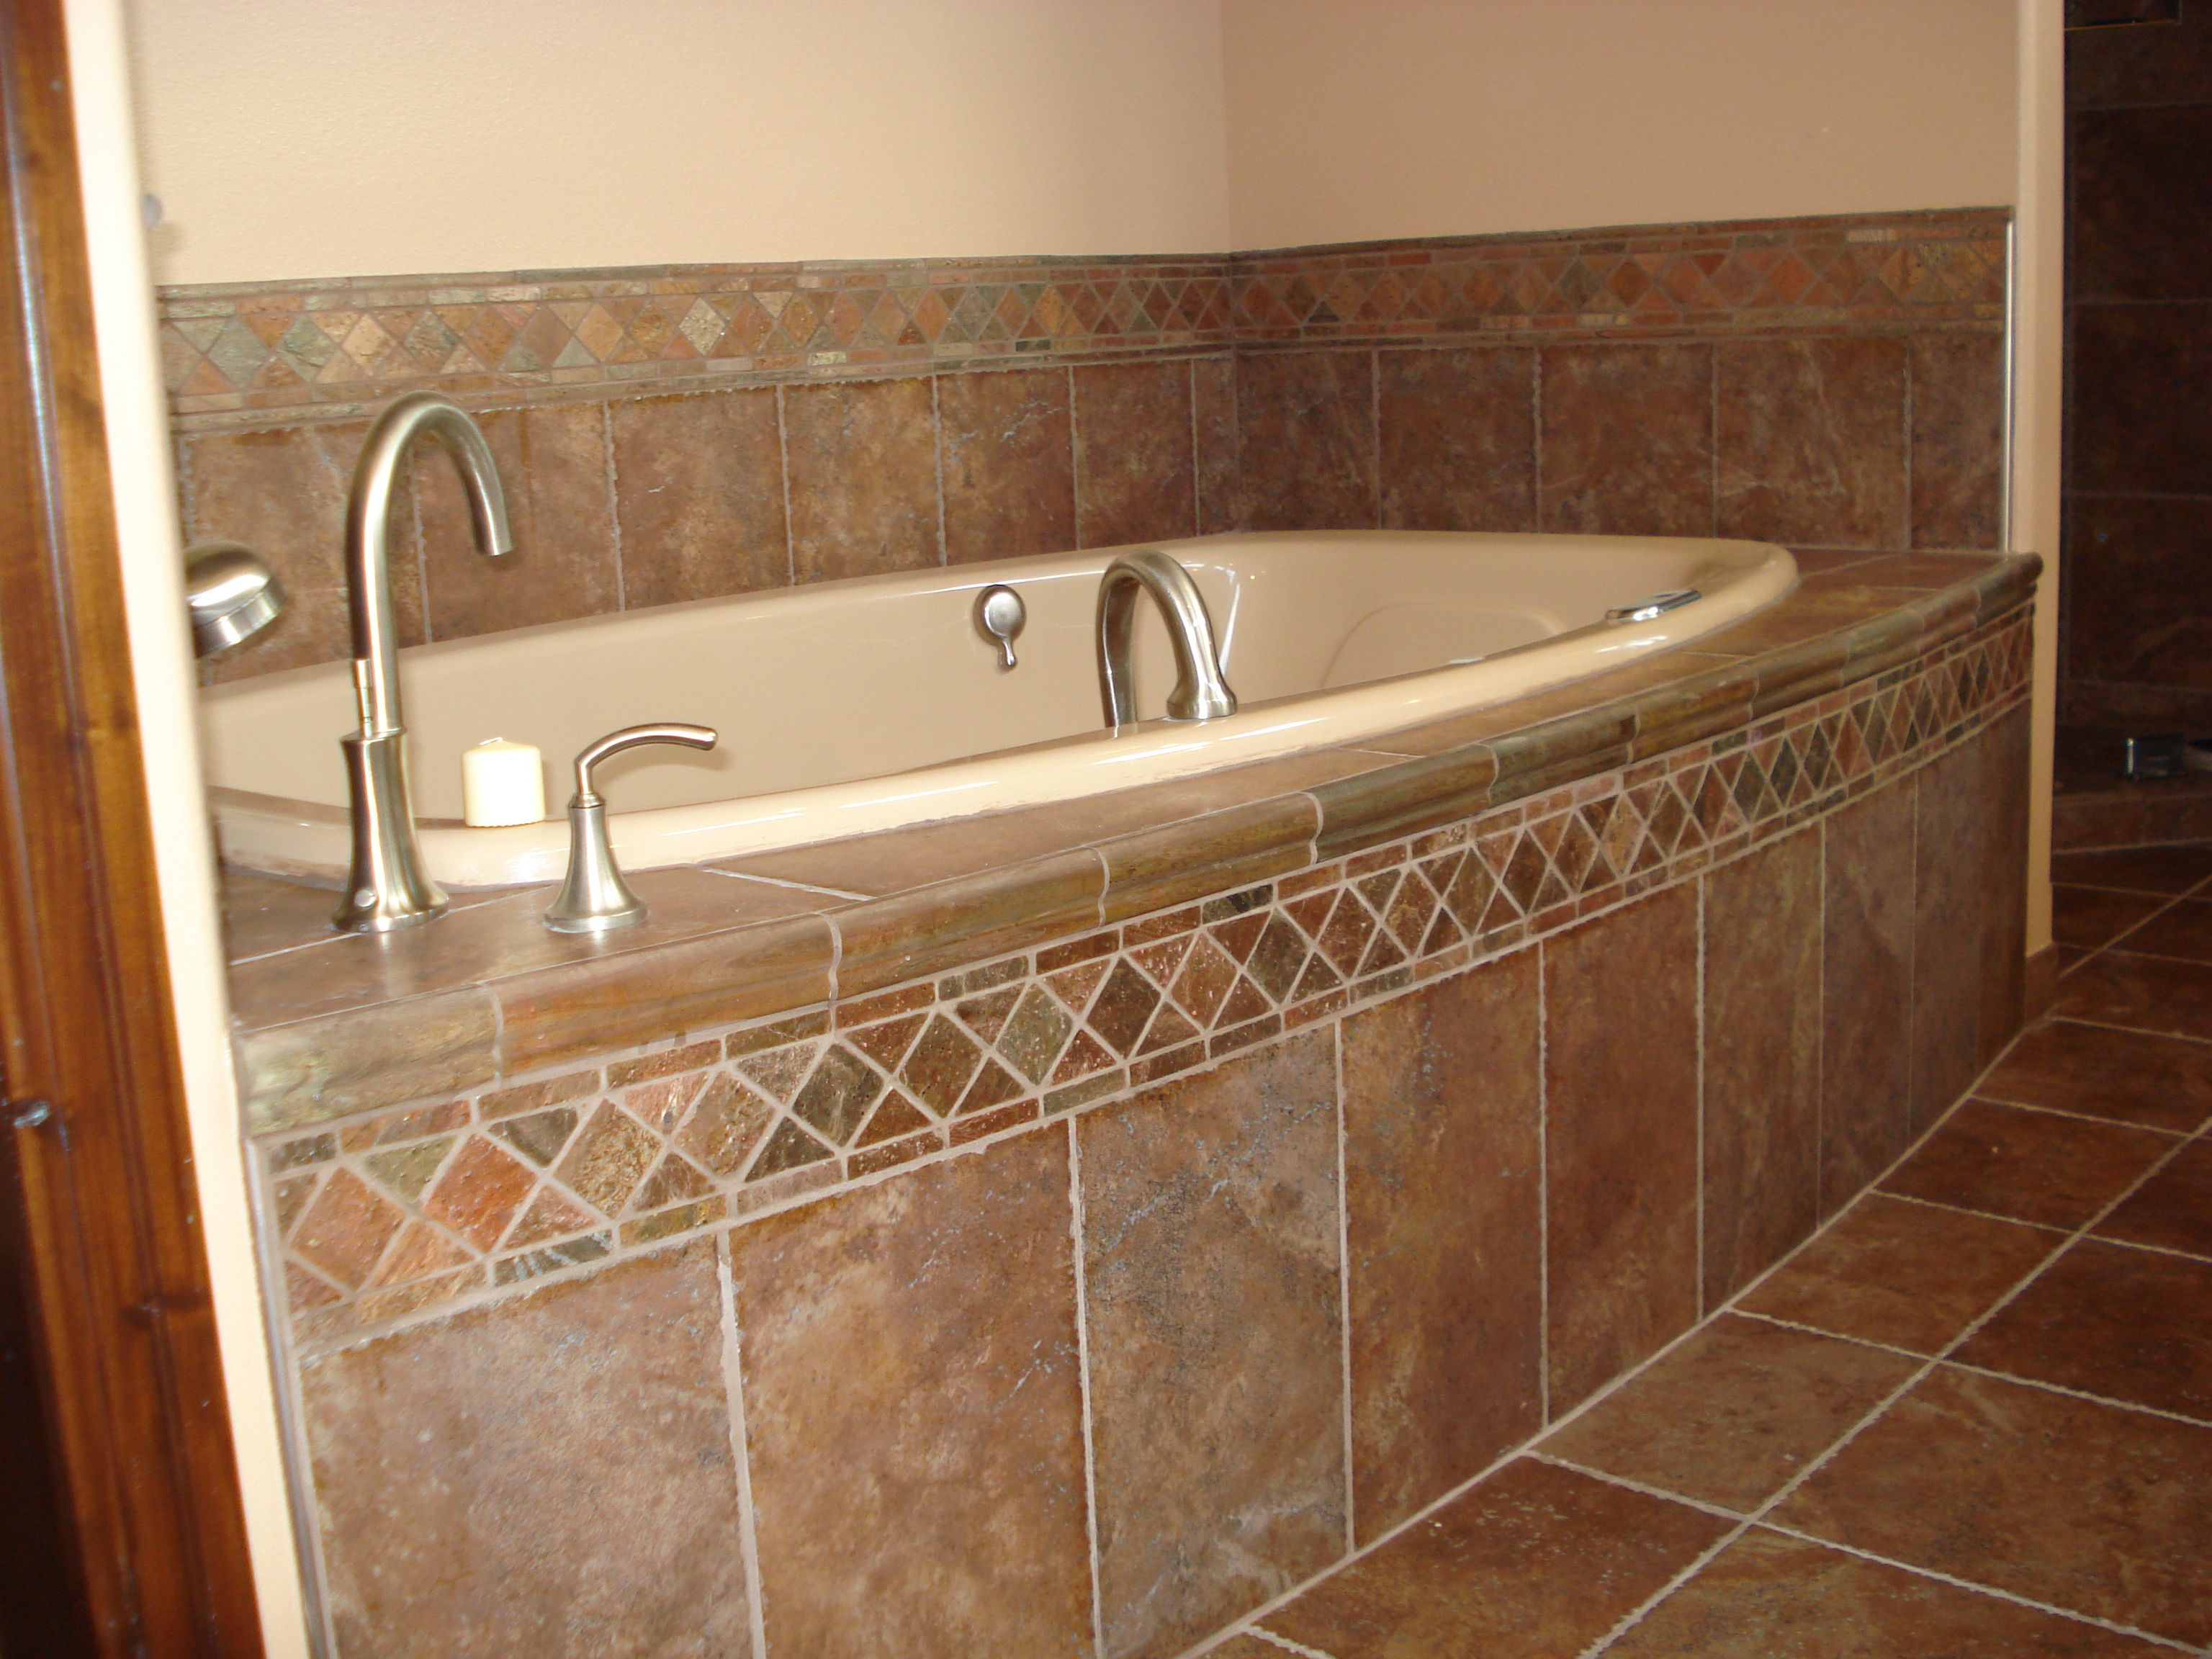 Tile Around Bathtub Ideas Browse Our Photo Gallery For Ideas Bathtub Tile Tile Around Bathtub Bathtub Surround